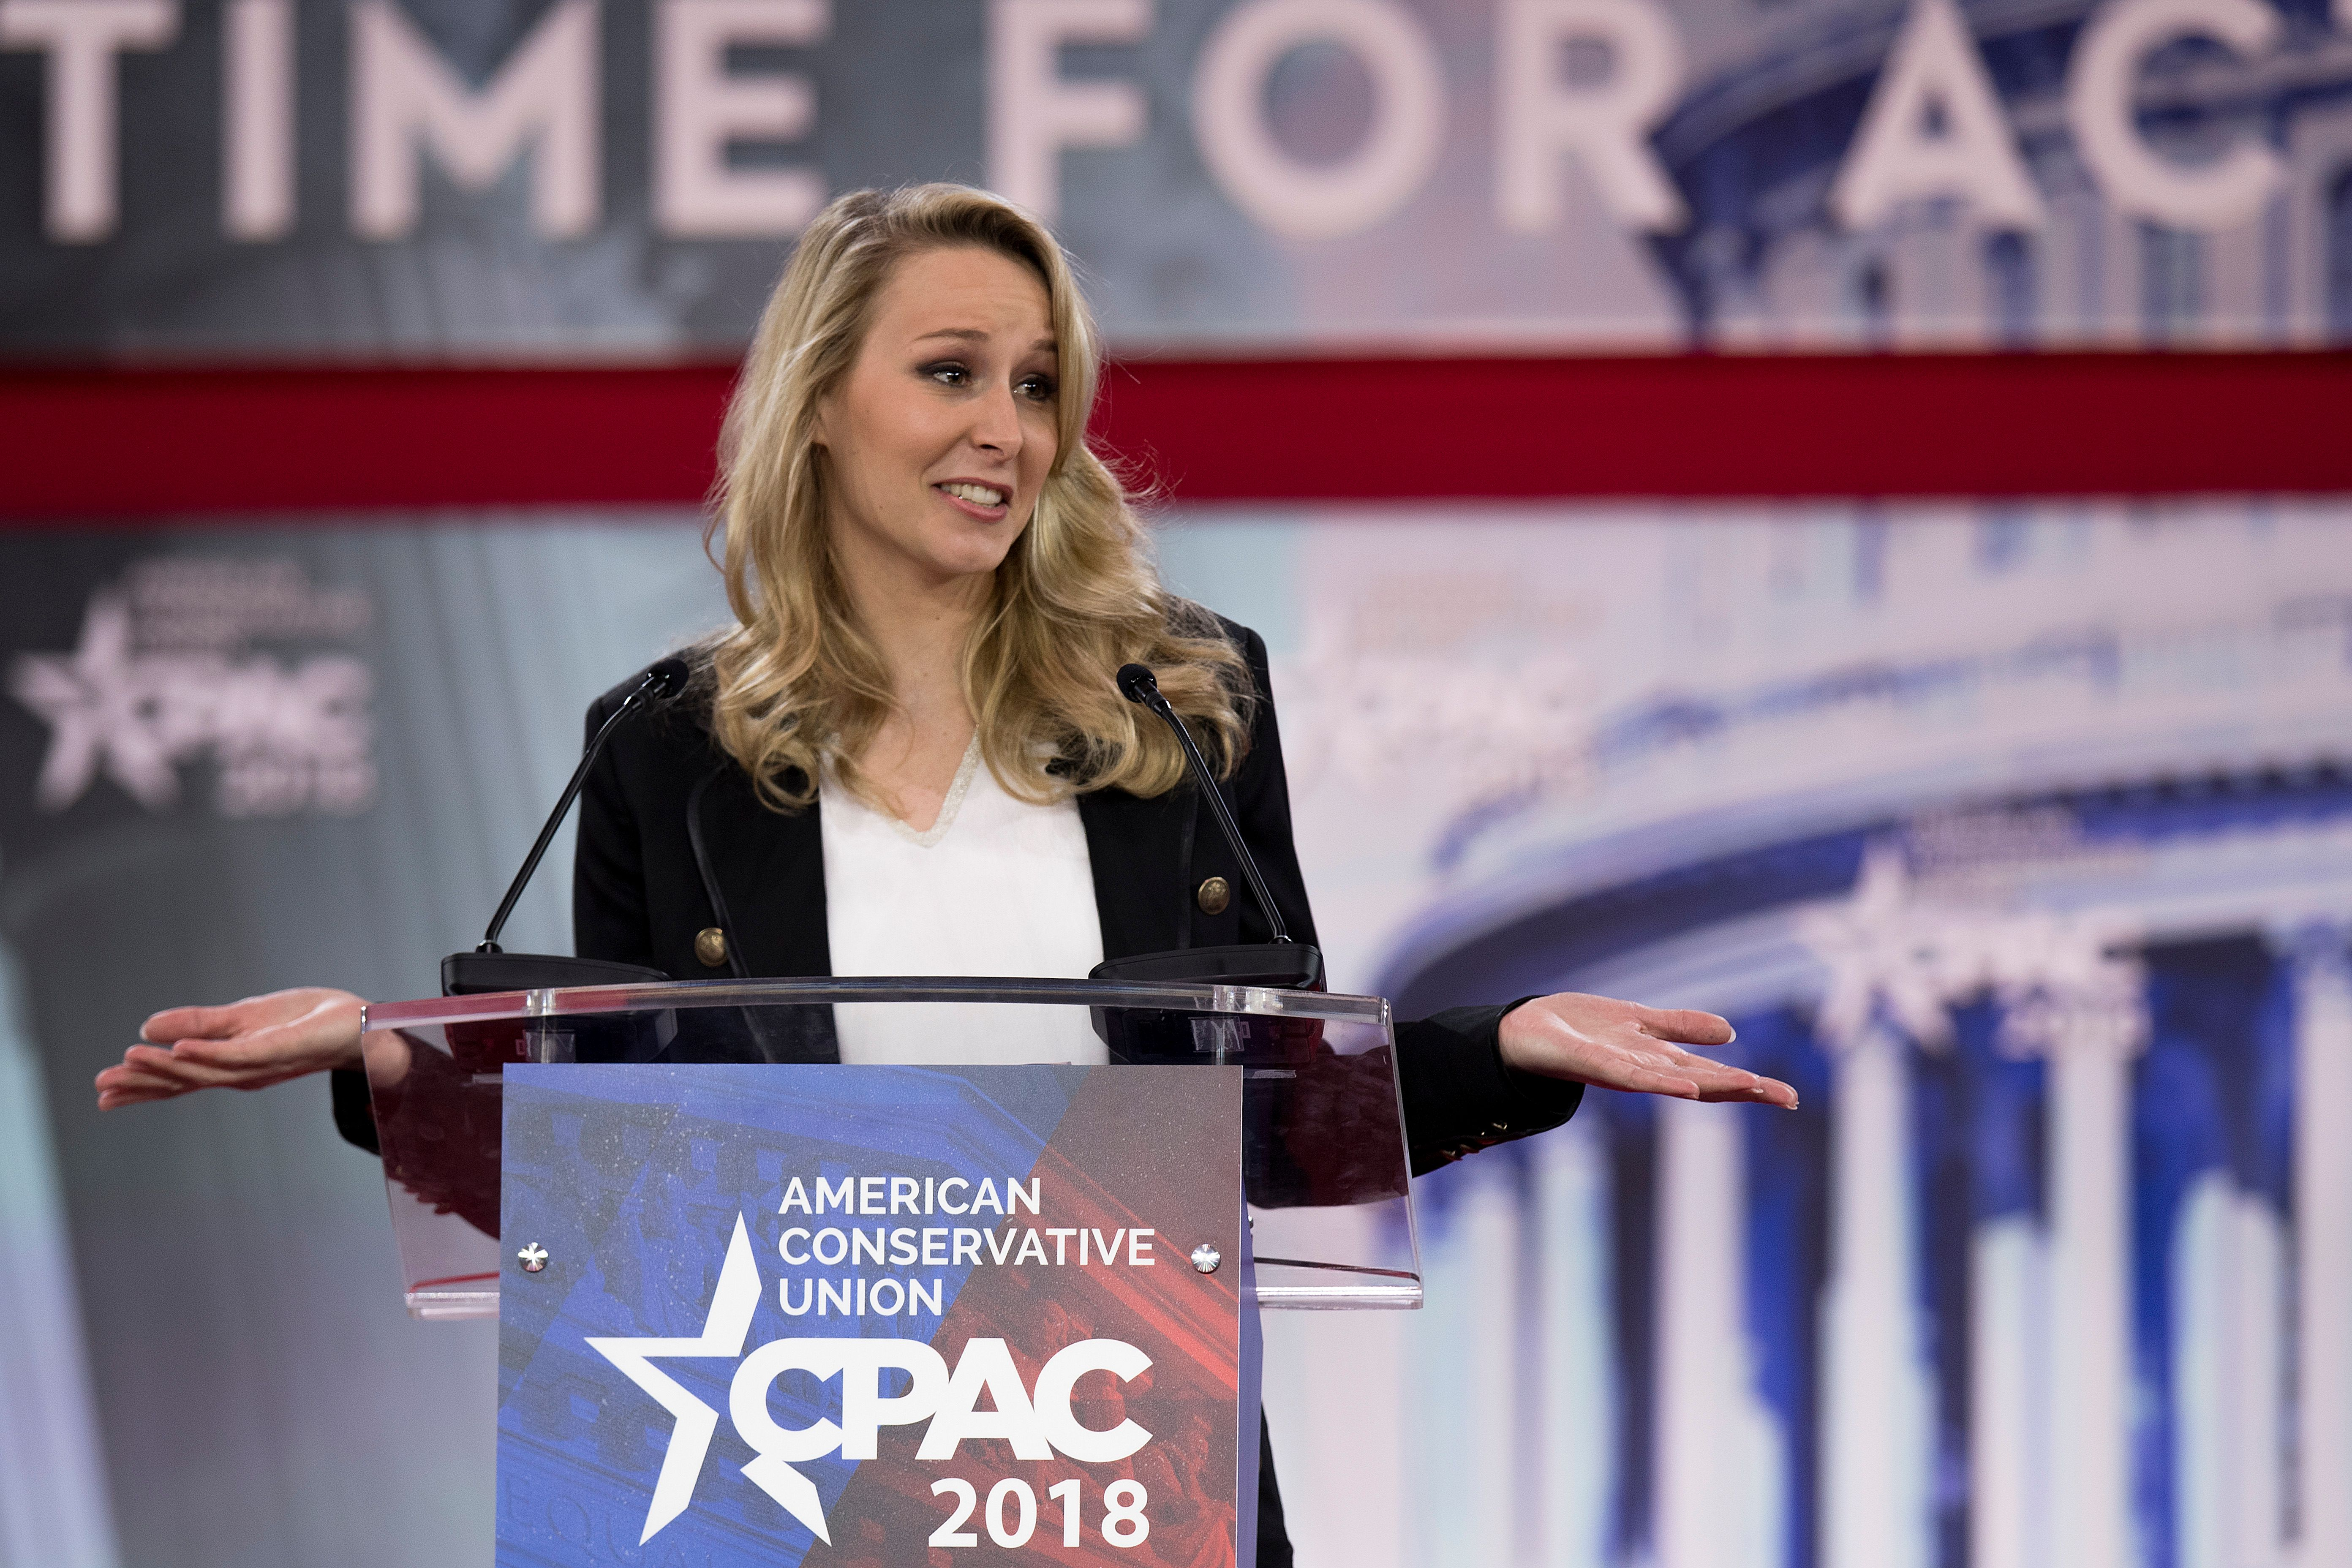 French far-right National Front (FN) party former member of parliament Marion Marechal-Le Pen speaks during the 2018 Conservative Political Action Conference in Oxen Hill, Maryland, on February 22, 2018